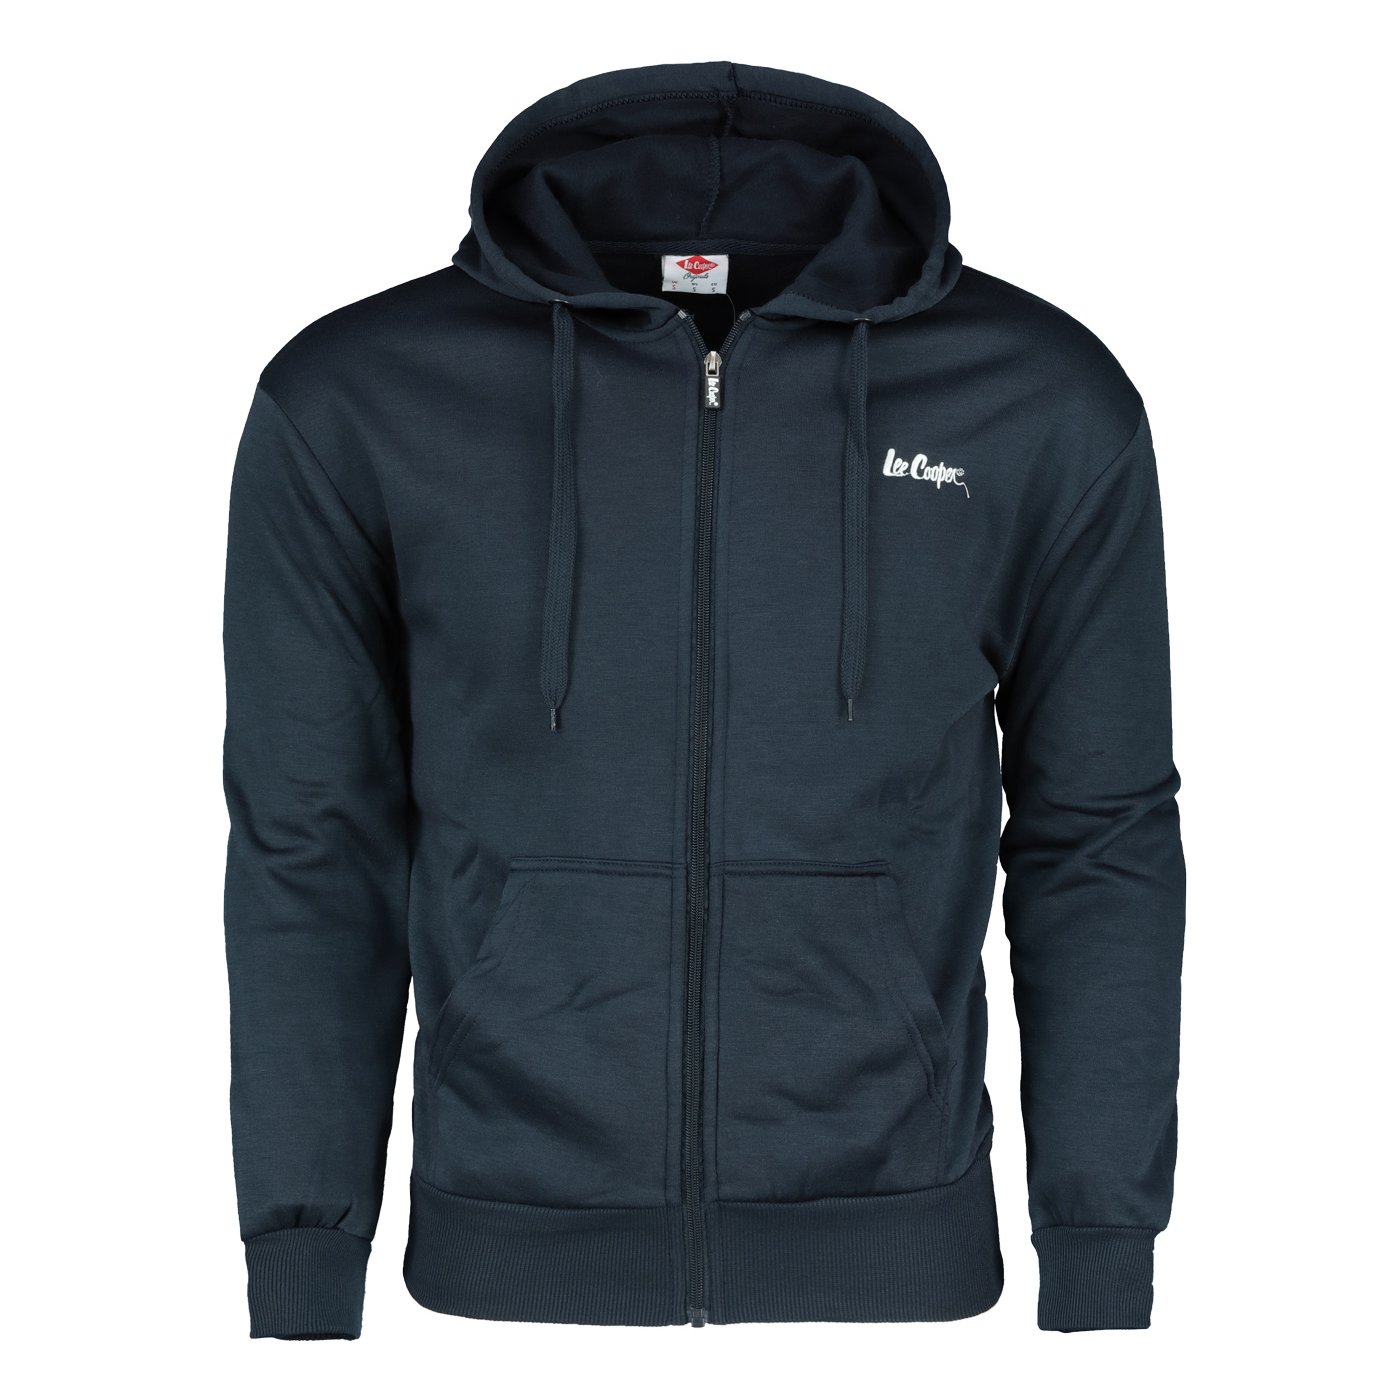 Men's hoodie Lee Cooper Full Zip